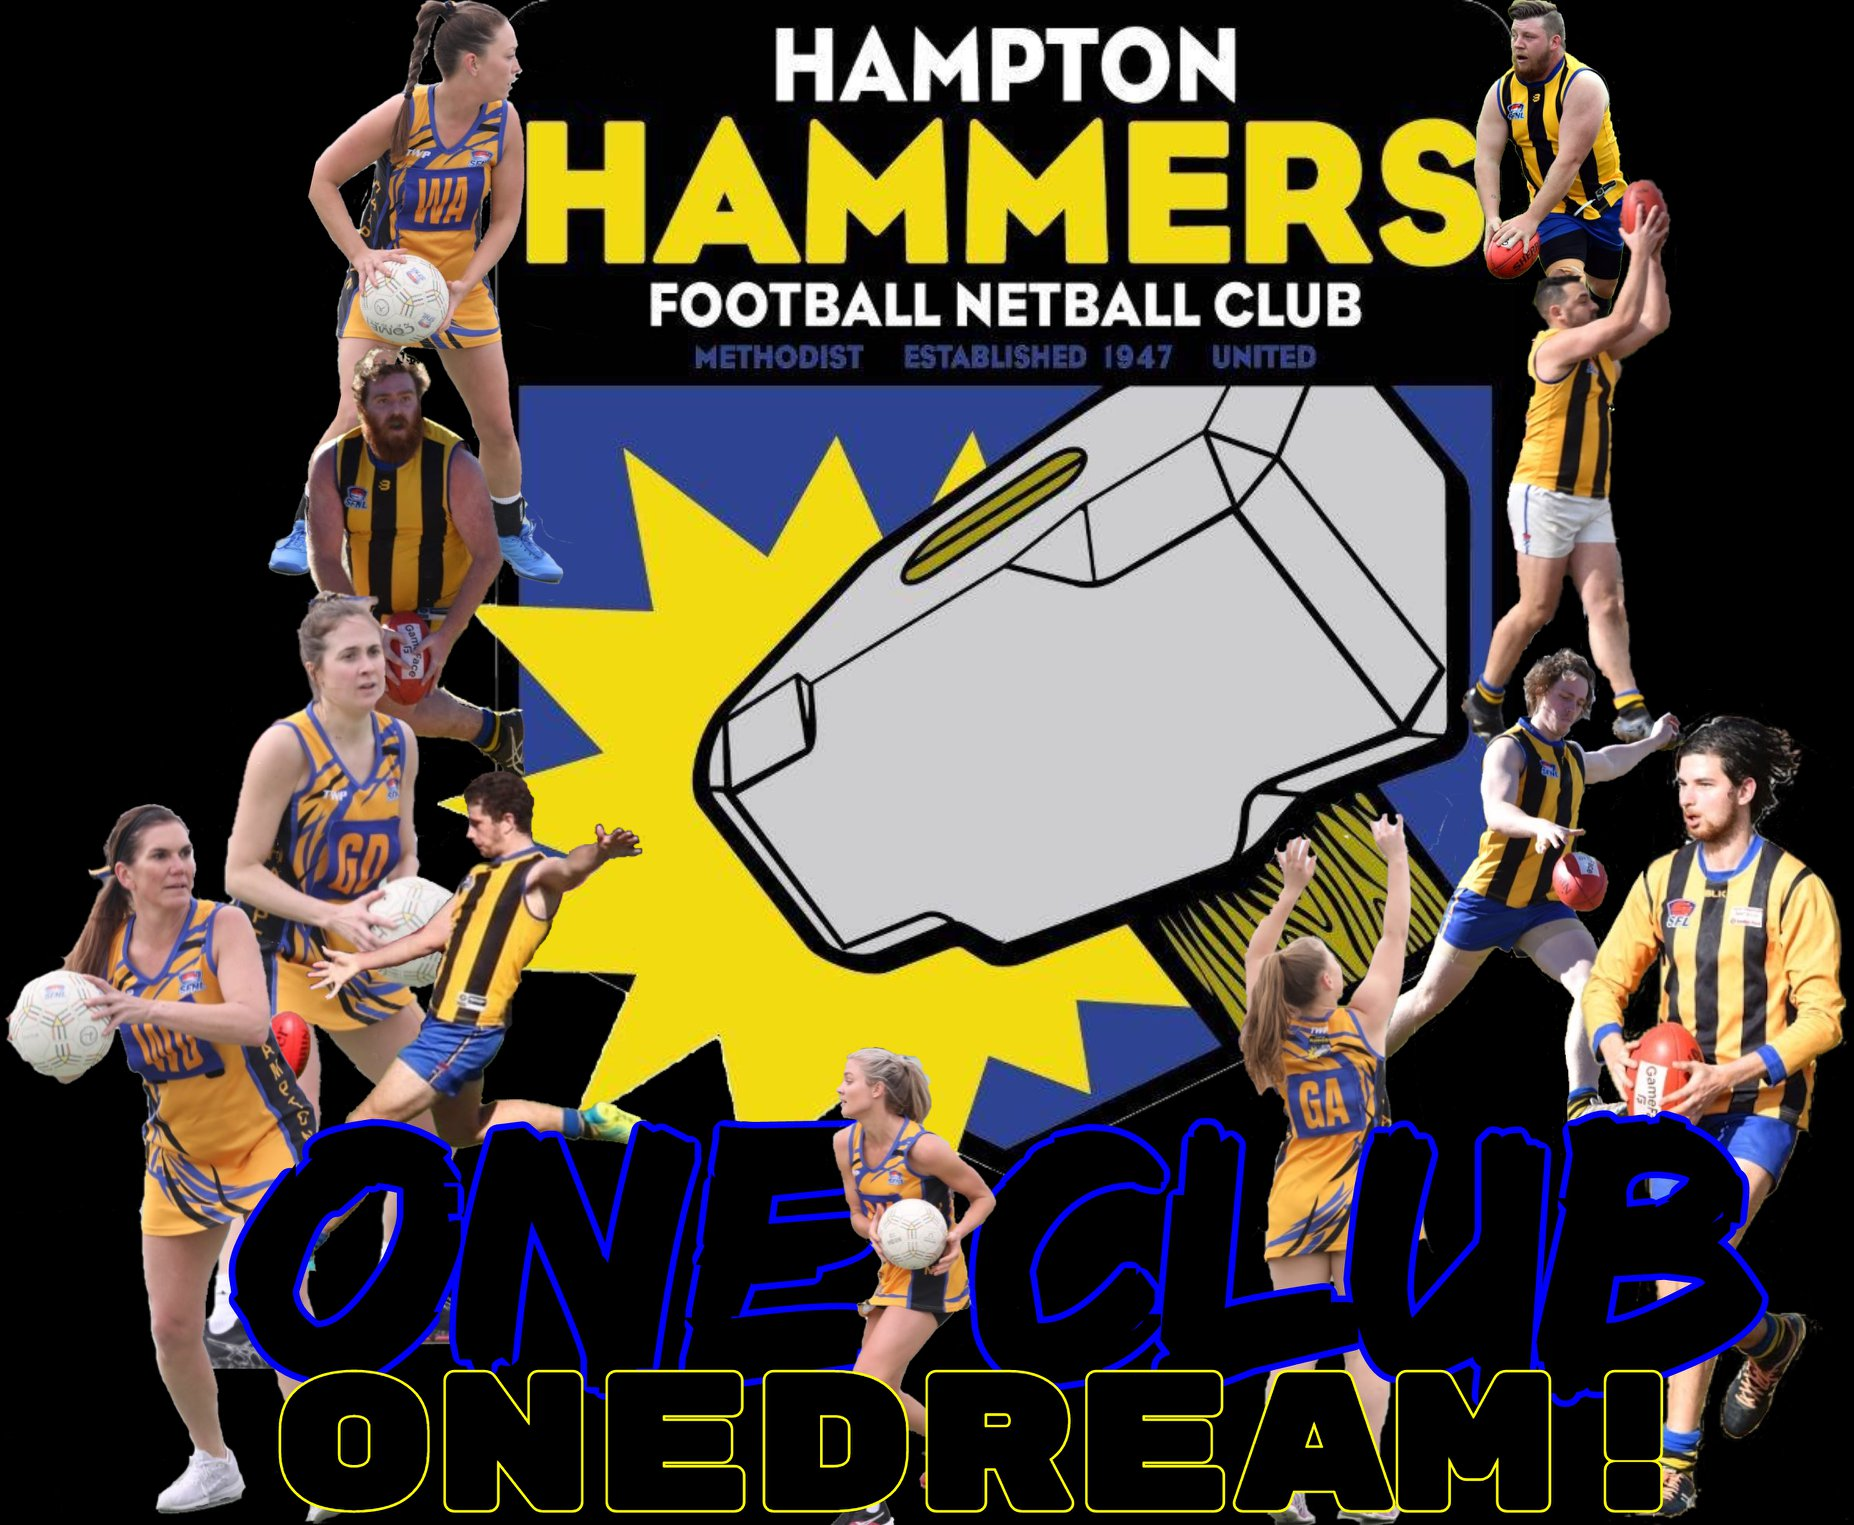 Hampton Hammers Football Netball Club Women's Coach 2020